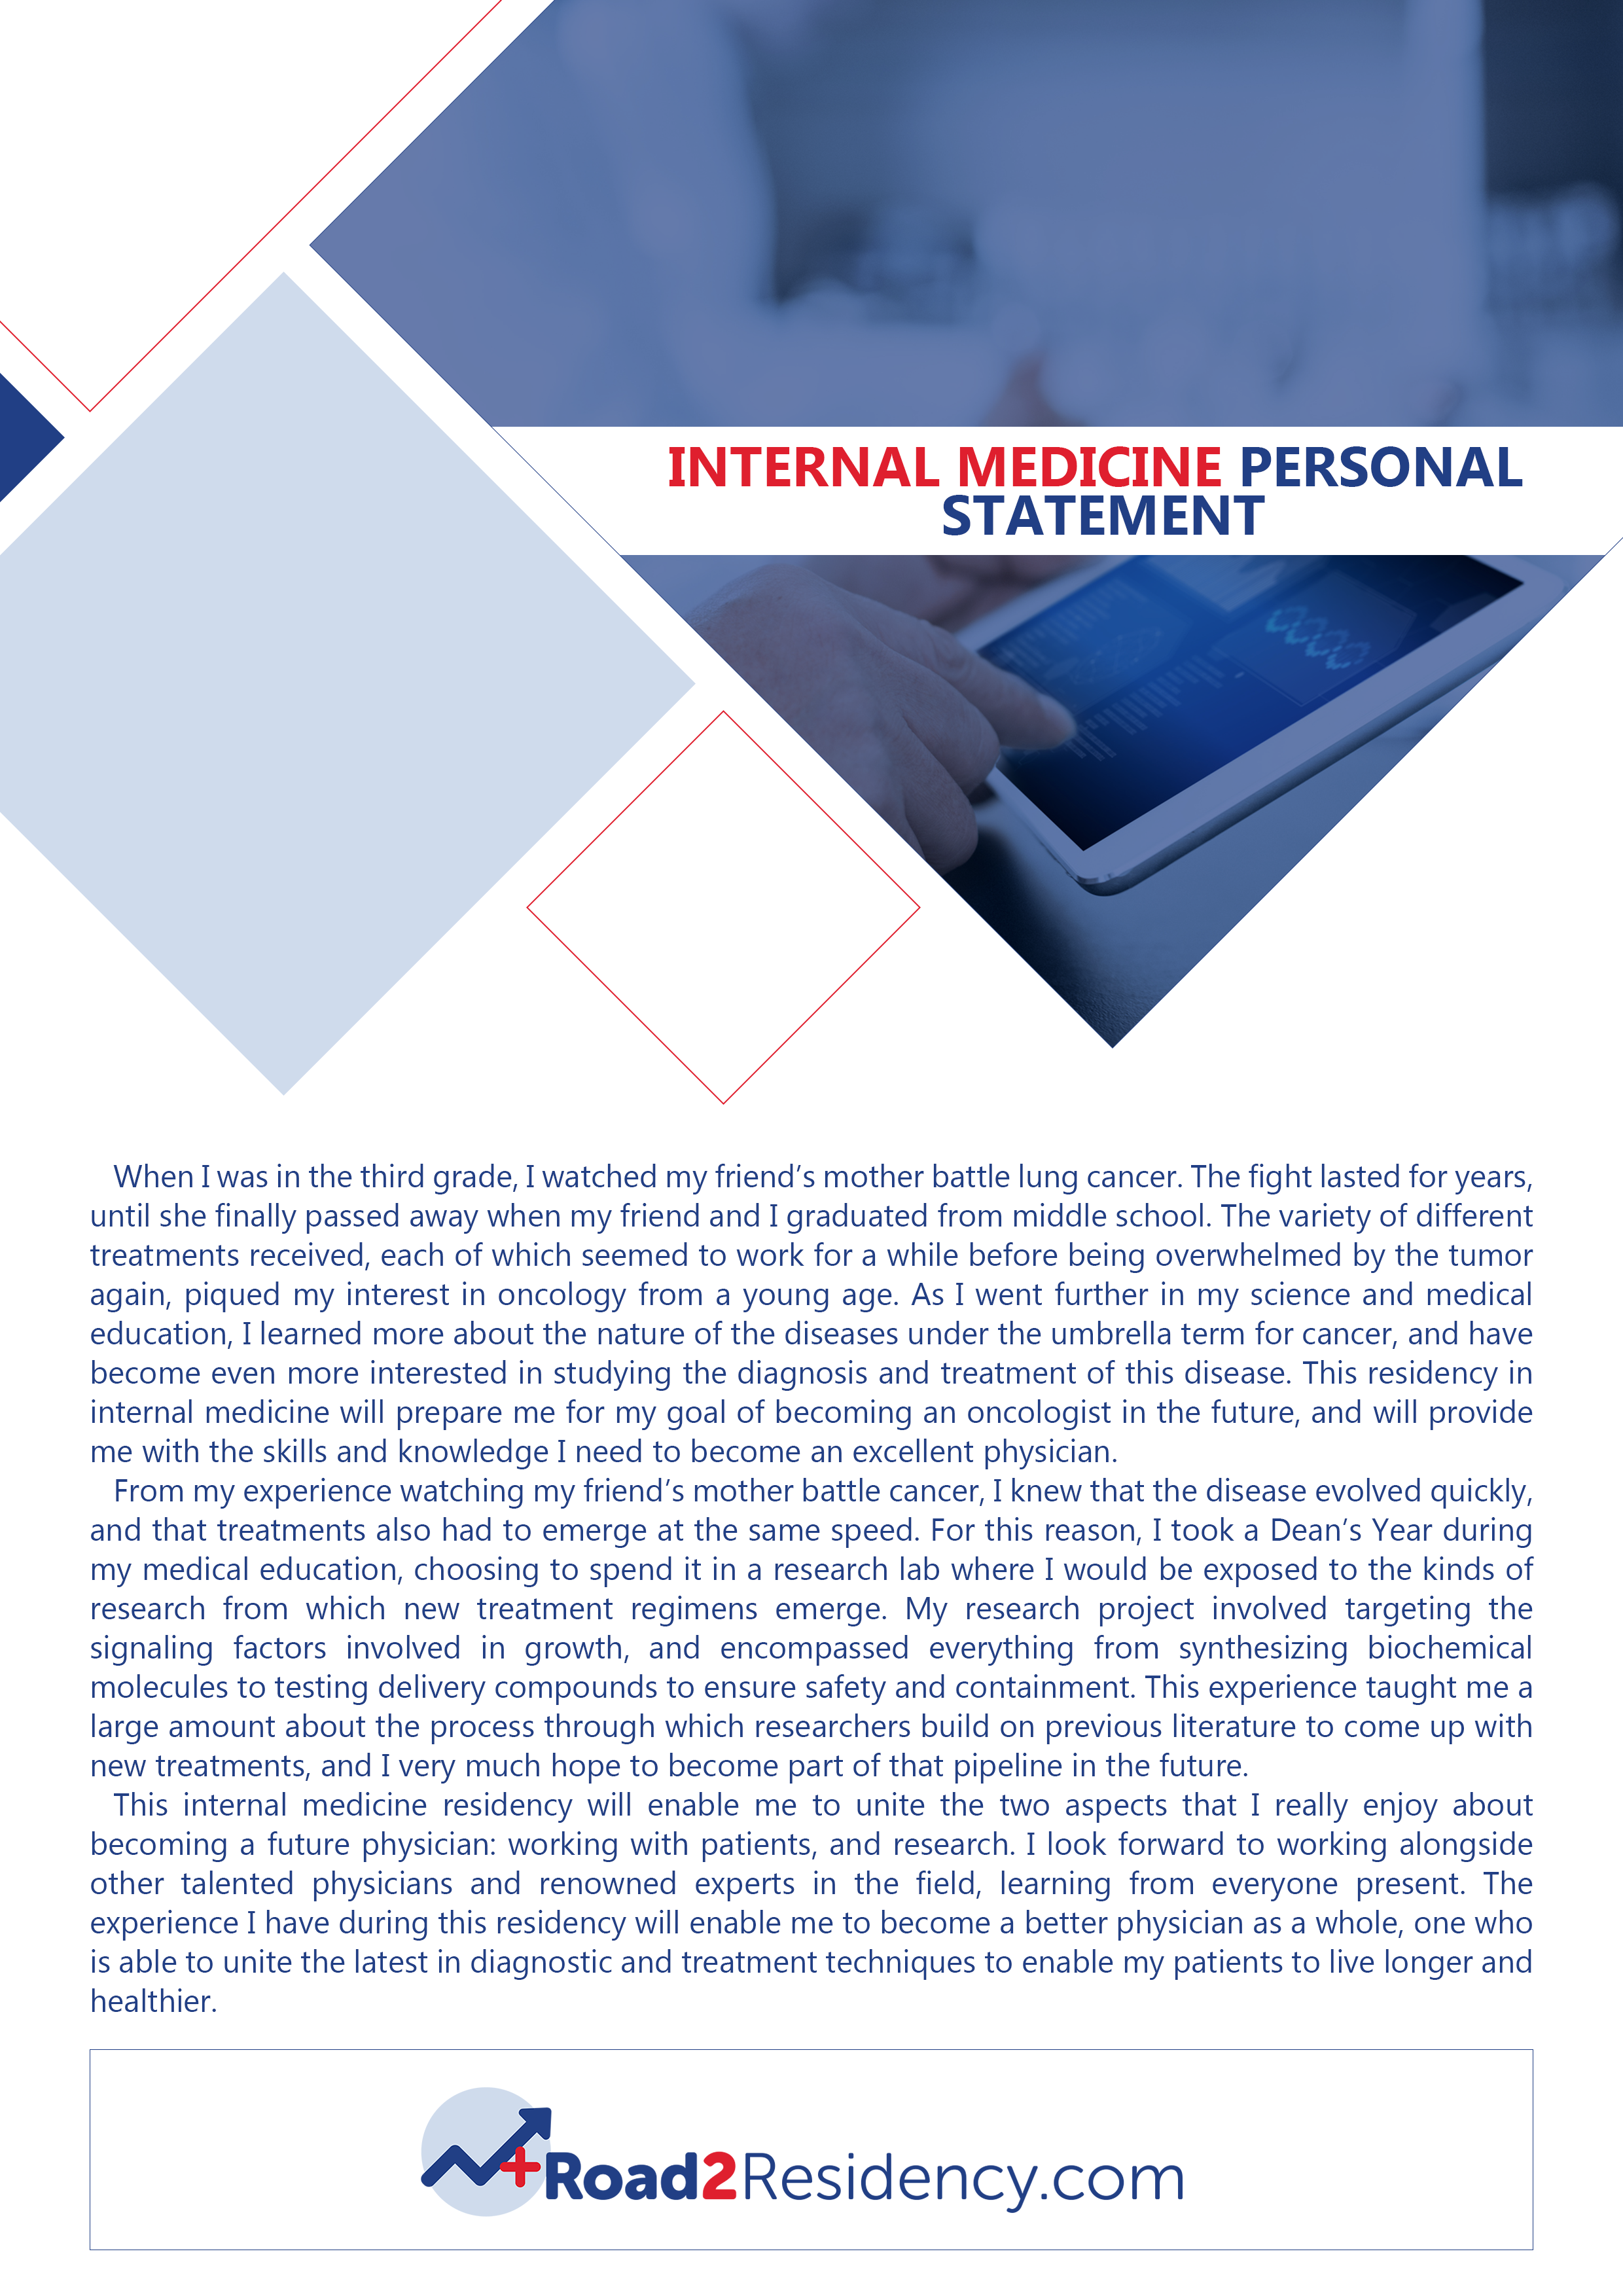 internal medicine residency personal statement sample that will show you how it should be done